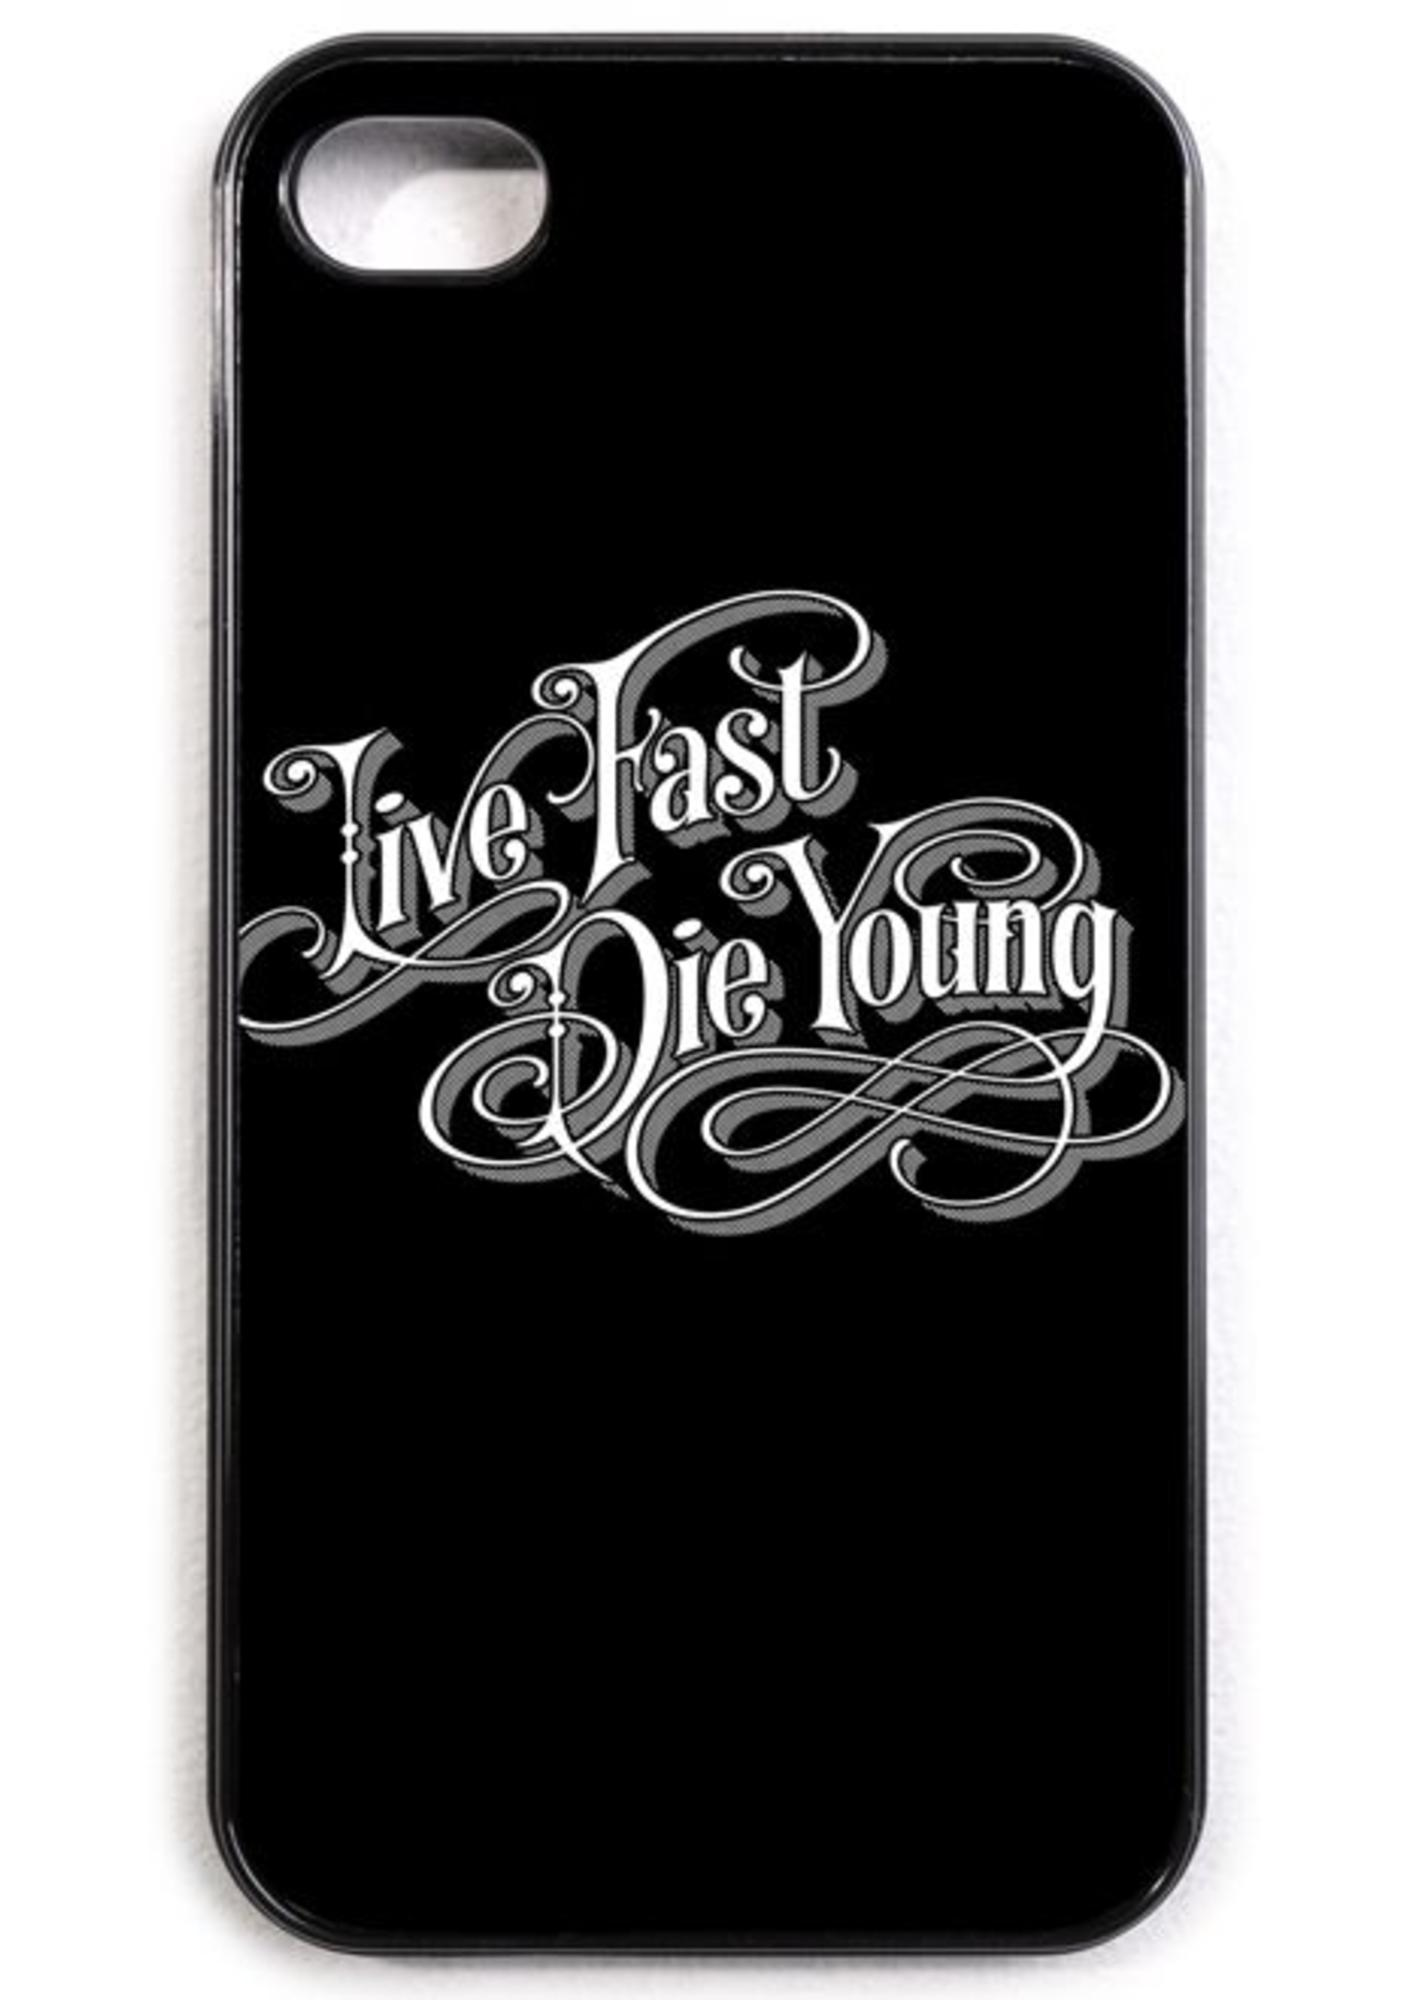 Disturbia Live Fast iPhone 4/4s Case